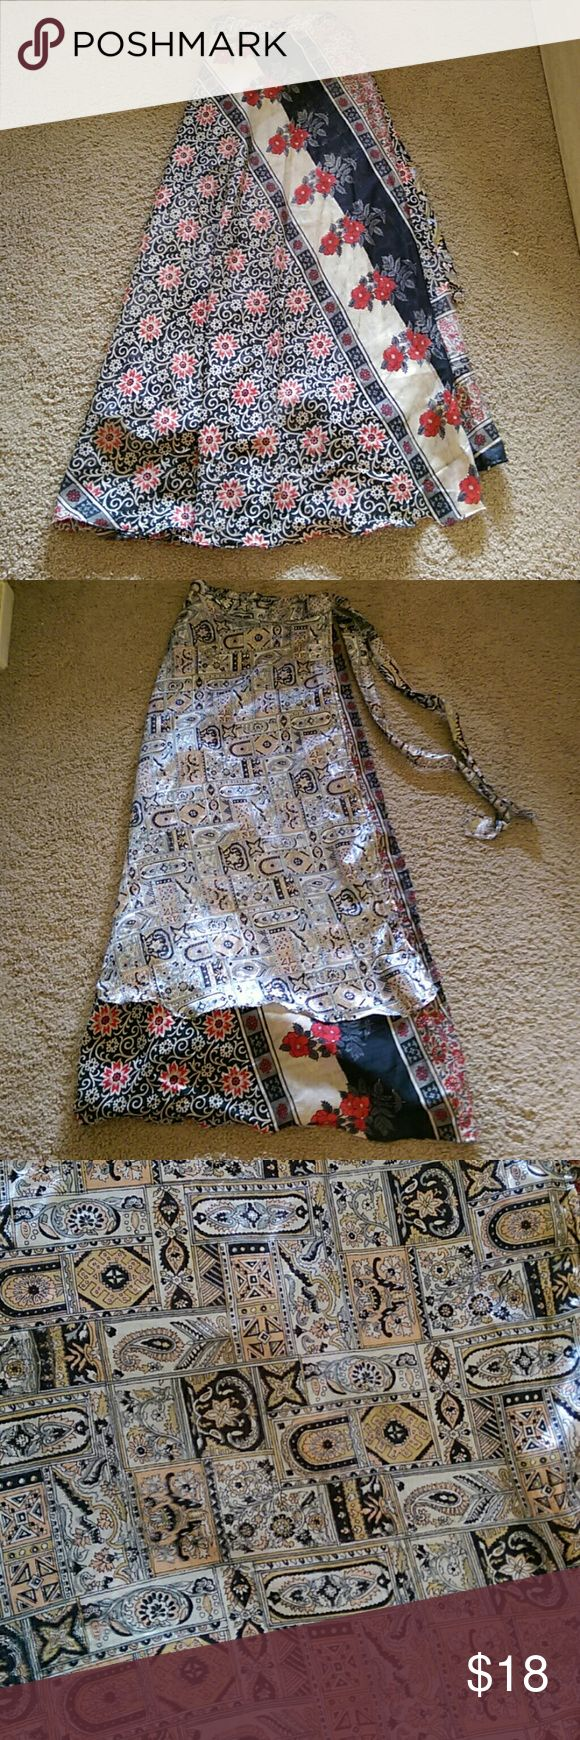 Boho floral wrap skirt/dress This gorgeous Indian wrap skirt is perfect for a boho-chique look. It's reversible with two beautiful prints and is made of a soft silky material. It can be worn in a million different ways, some examples shown in the last picture. Skirts